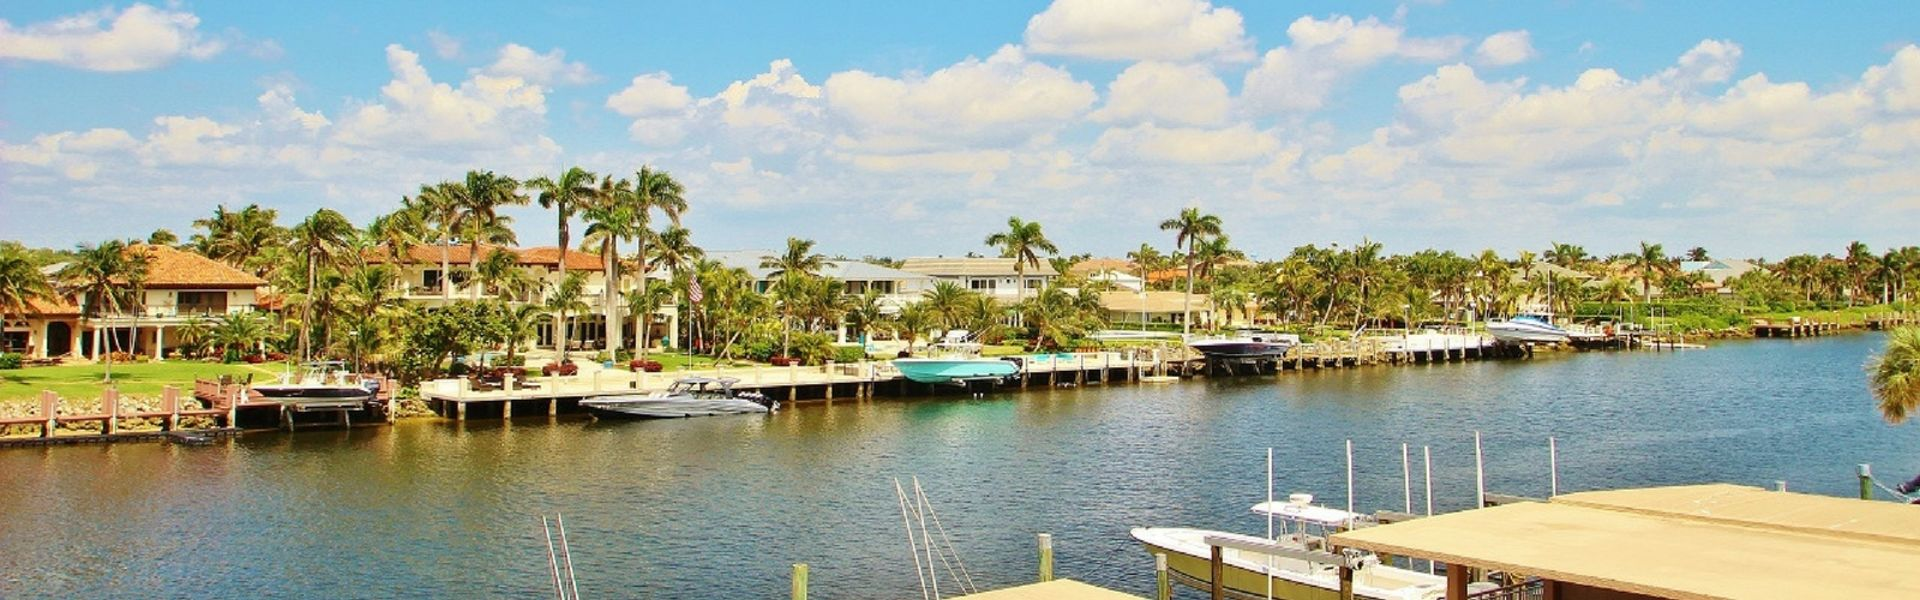 HILLSBORO BEACH, 2 BEDROOMS / 2 BATHROOMS, INTRACOASTAL FRONT, CORNER UNIT  FOR SALE